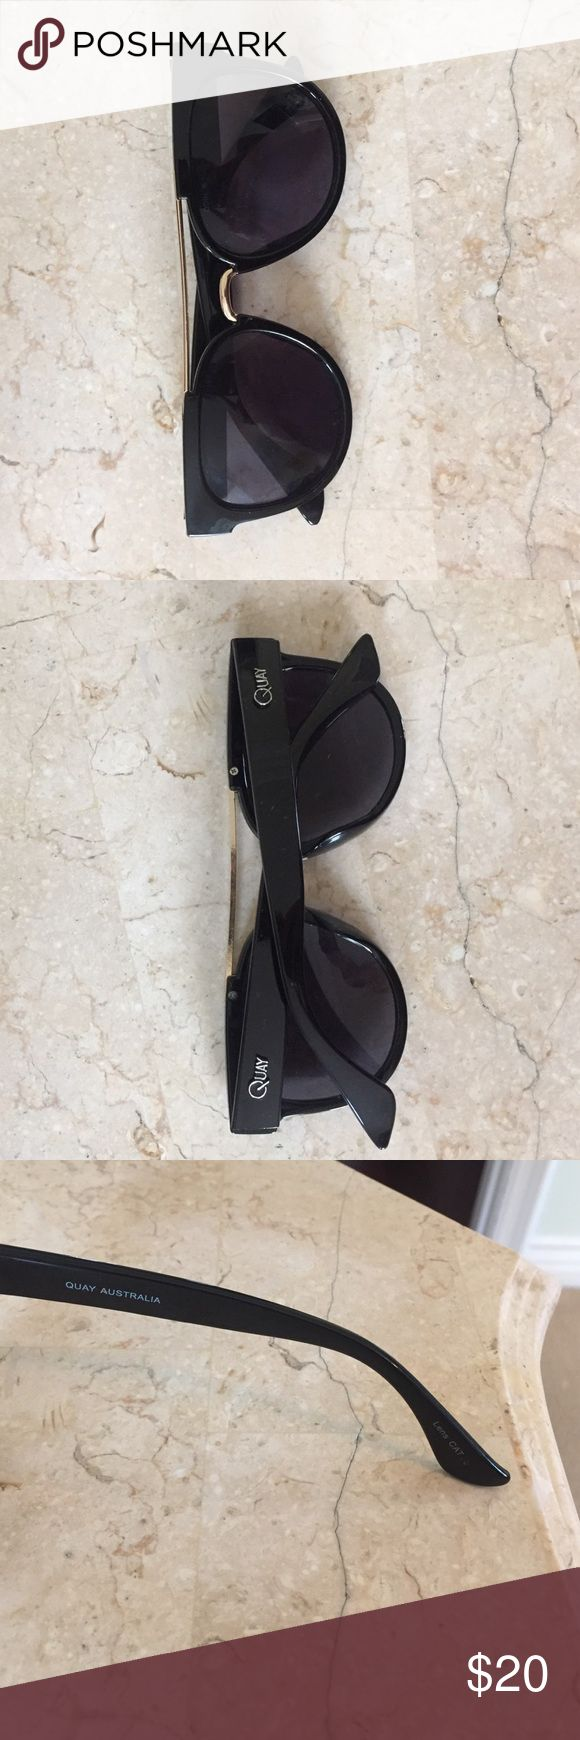 Black sunnies ✨ From Australia 🇦🇺✨These sleek sunnies feature matte plastic frames with a metal double bridge and molded nose bridge. Polycarbonate and Metal Frame. Polycarbonate Lens. Stainless Steel Hinges. 100% UV protection. Width: 140mm. Height: 45mm. Nose Gap: 10mm. Quay Australia Accessories Sunglasses